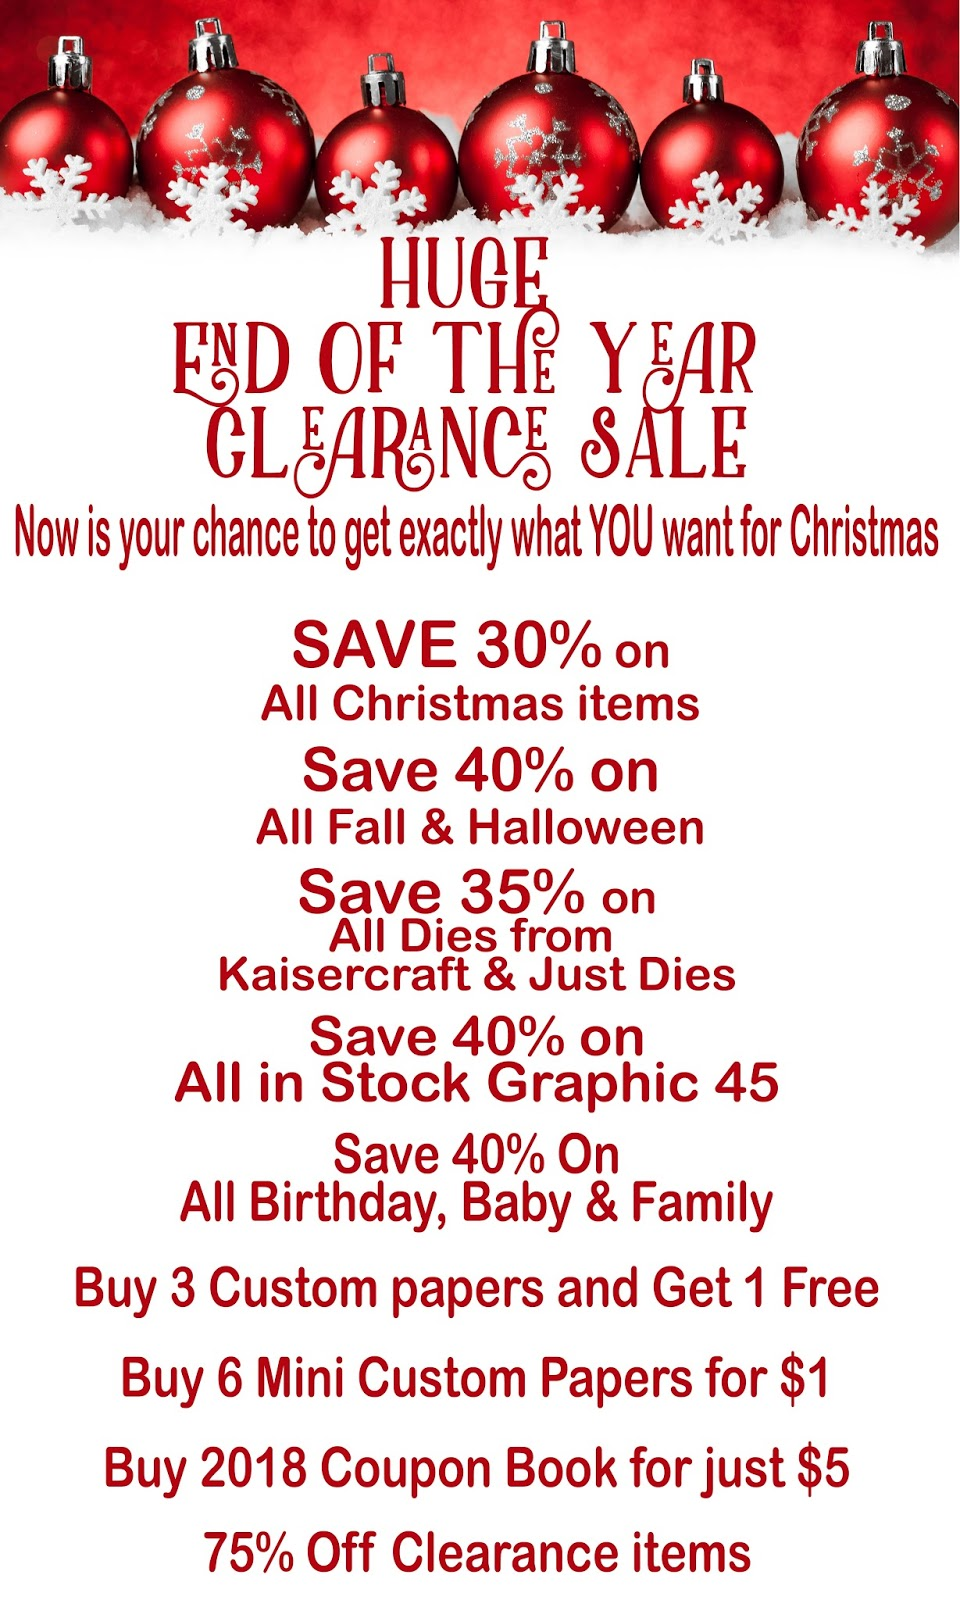 Photo Scraps: End of the Year Clearance Sale